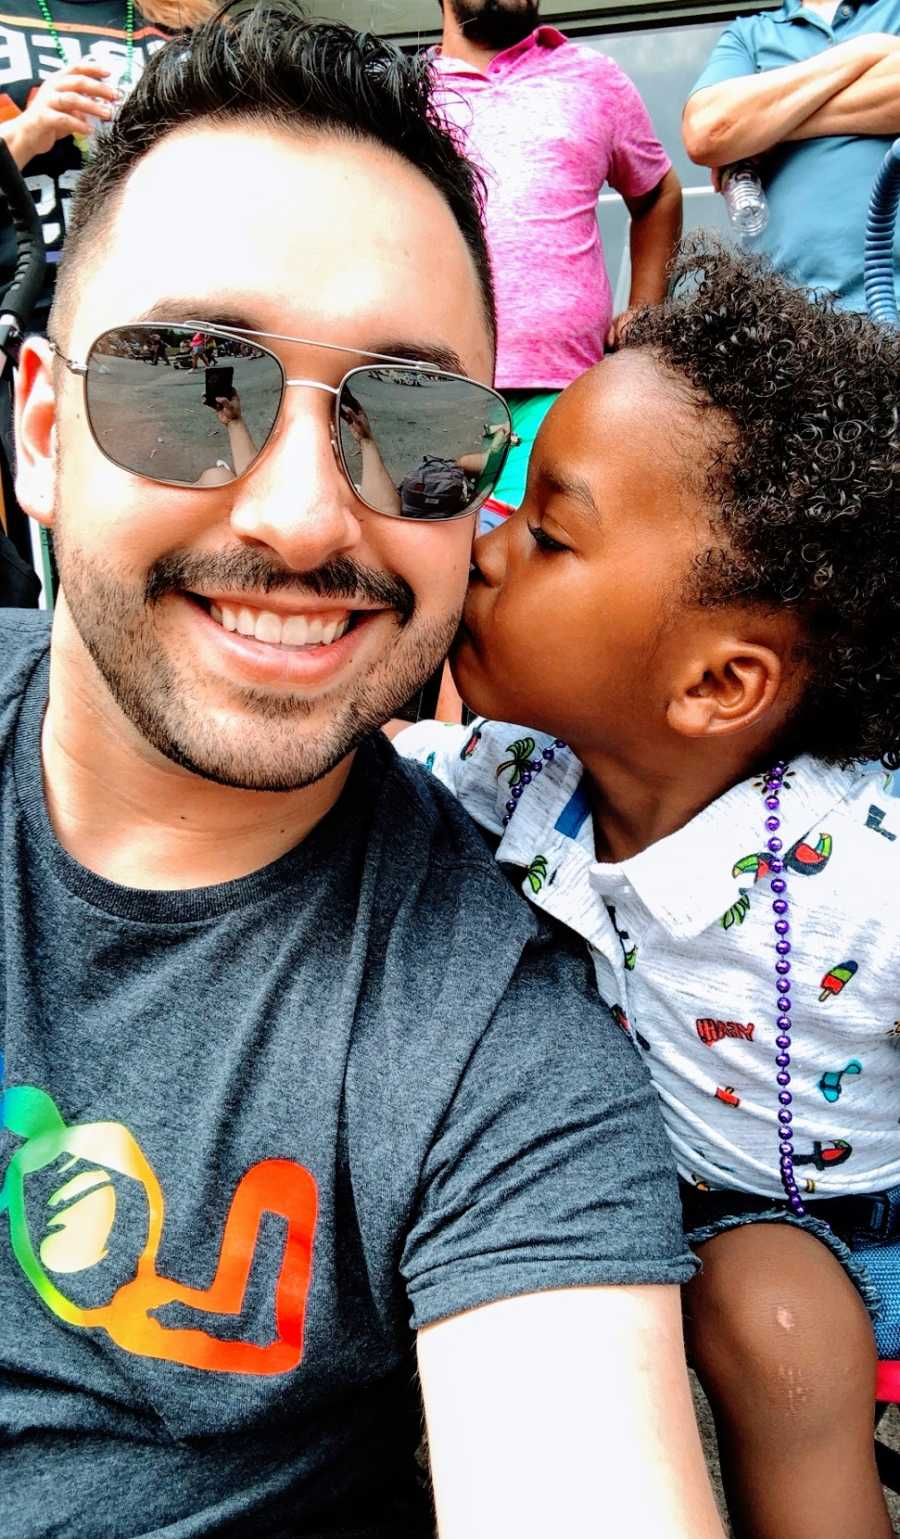 A toddler kisses his adoptive father on the cheek